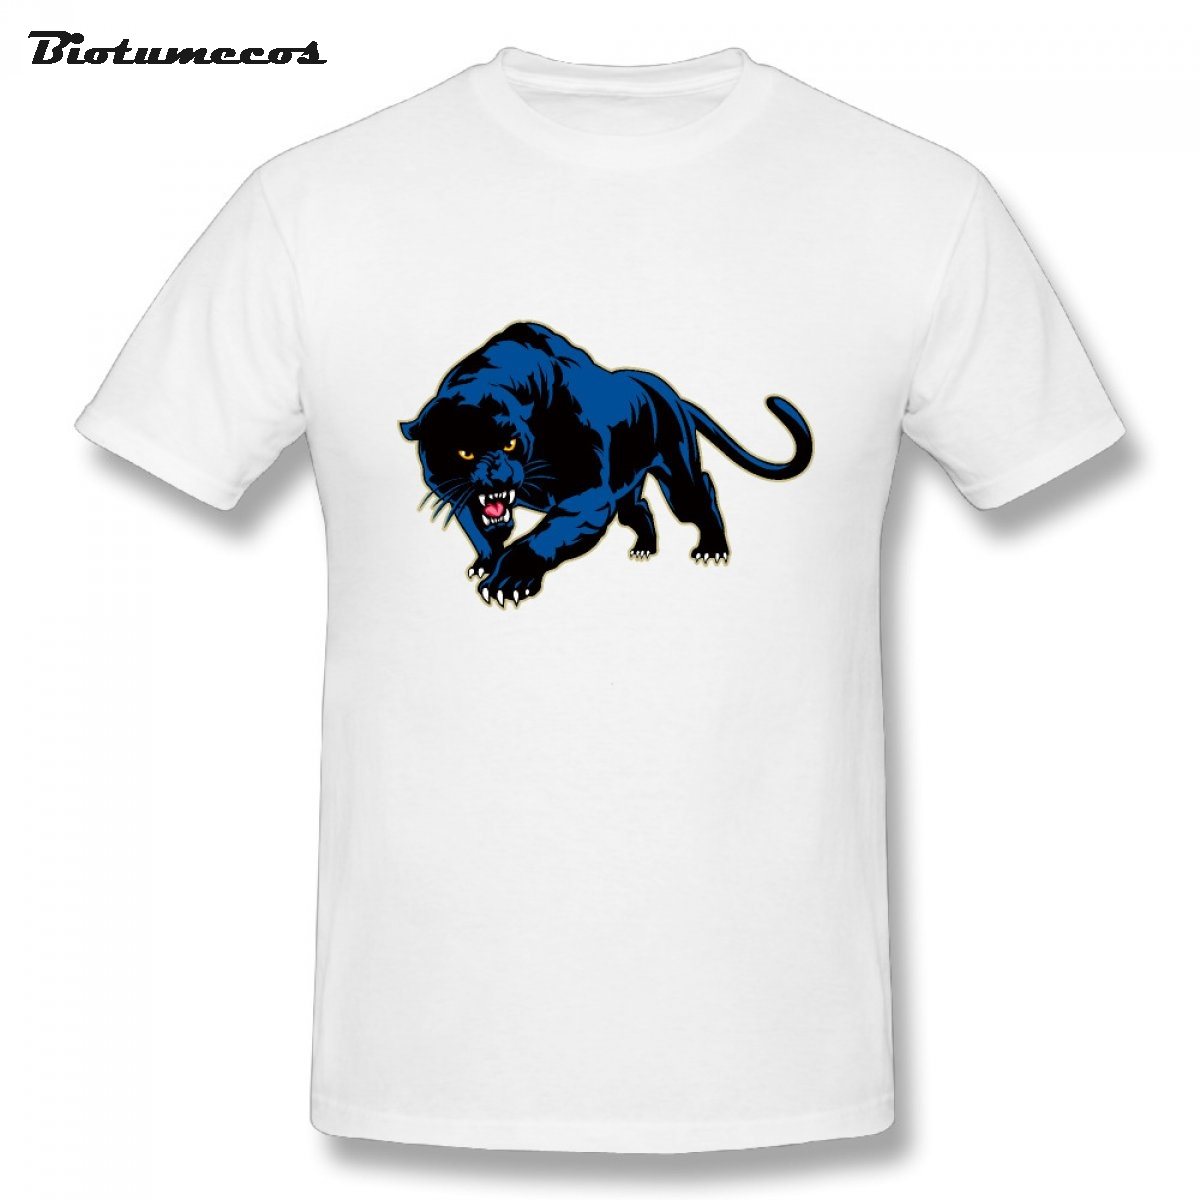 Adult t shirt classic style cheetah printed t shirt 100 for T shirt printing stonecrest mall